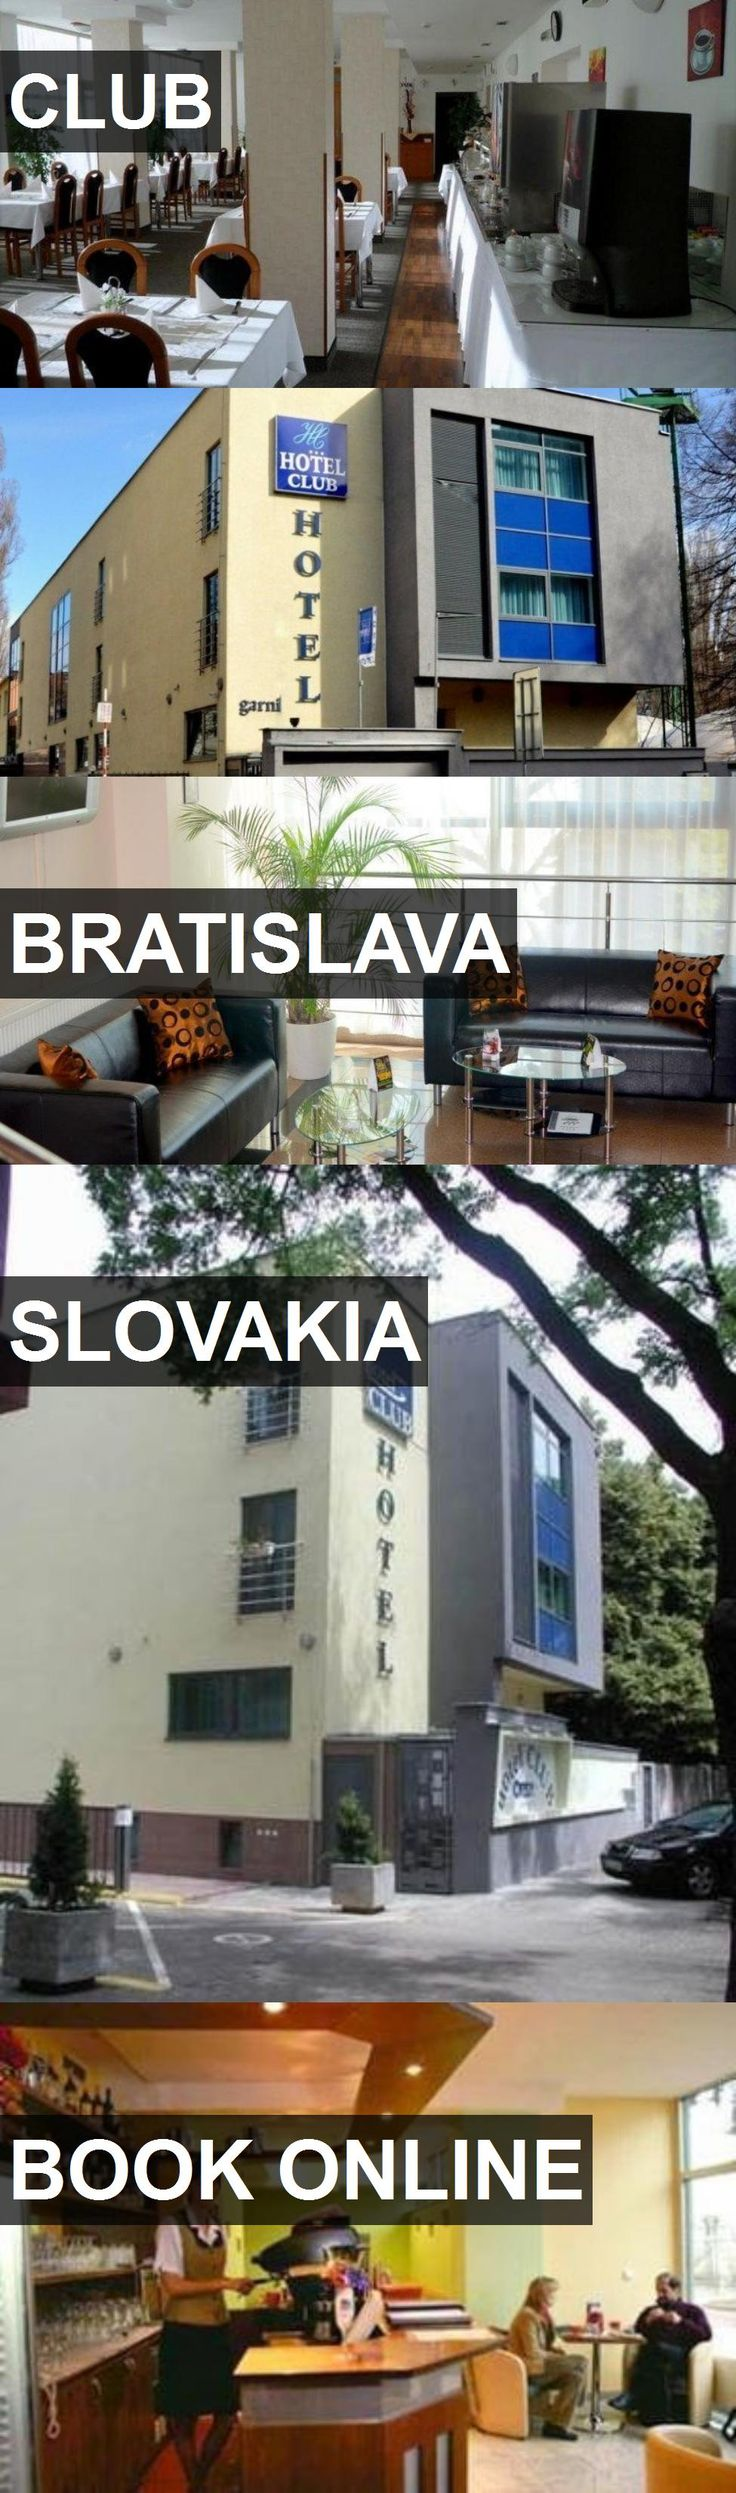 Hotel CLUB in Bratislava, Slovakia. For more information, photos, reviews and best prices please follow the link. #Slovakia #Bratislava #CLUB #hotel #travel #vacation